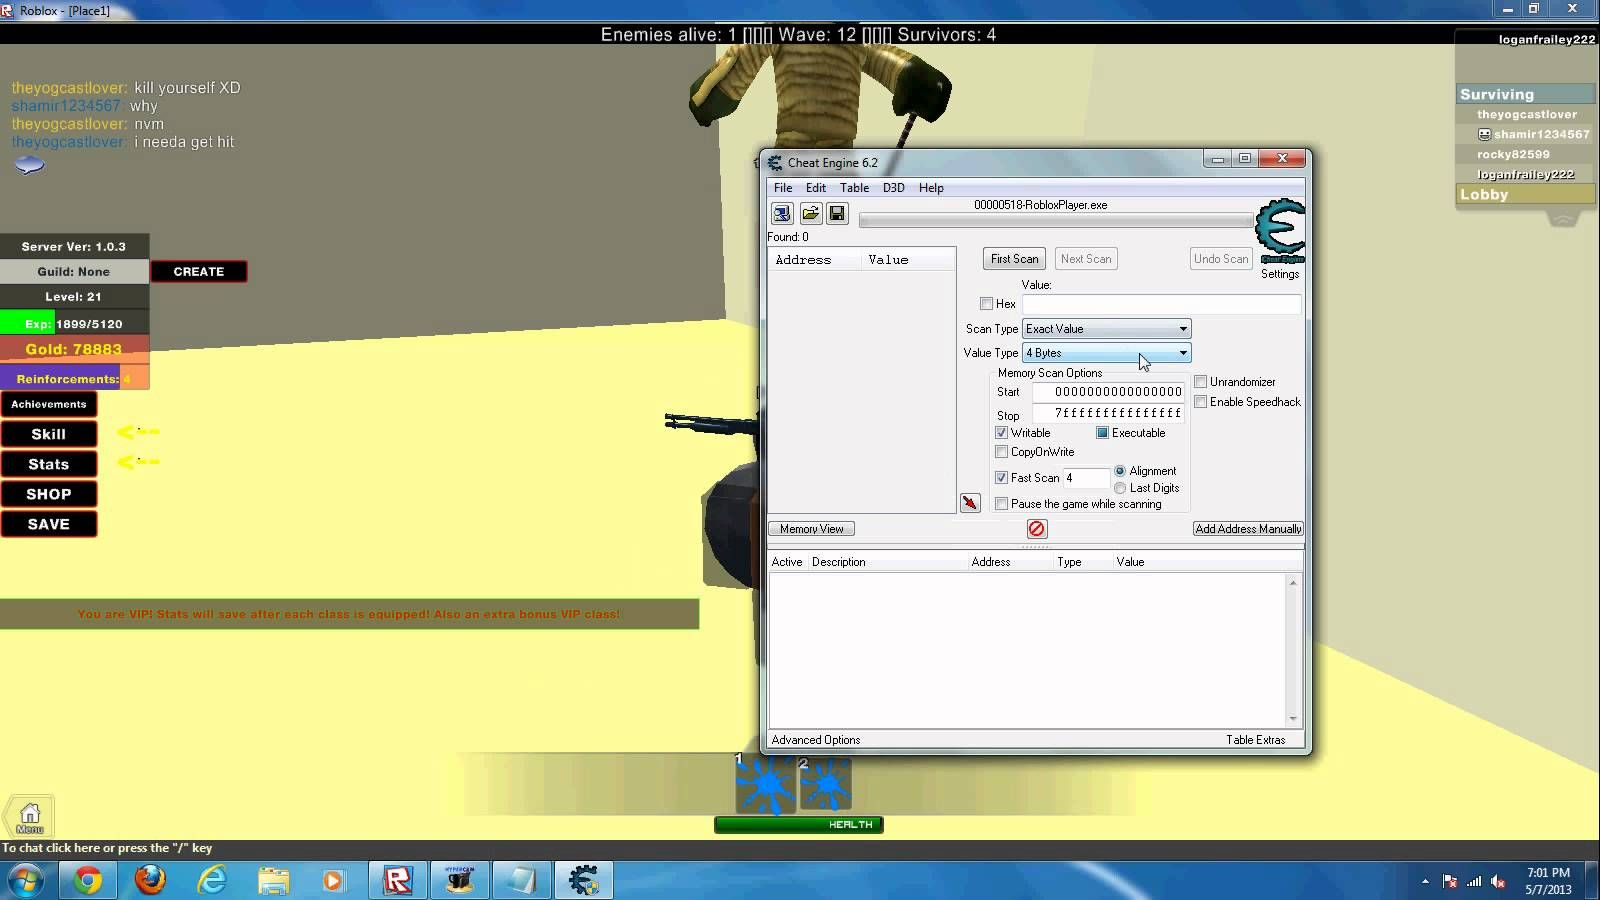 Roblox gear id code list bing images - How To Hack Roblox Pwned Incrypt Version 10 0